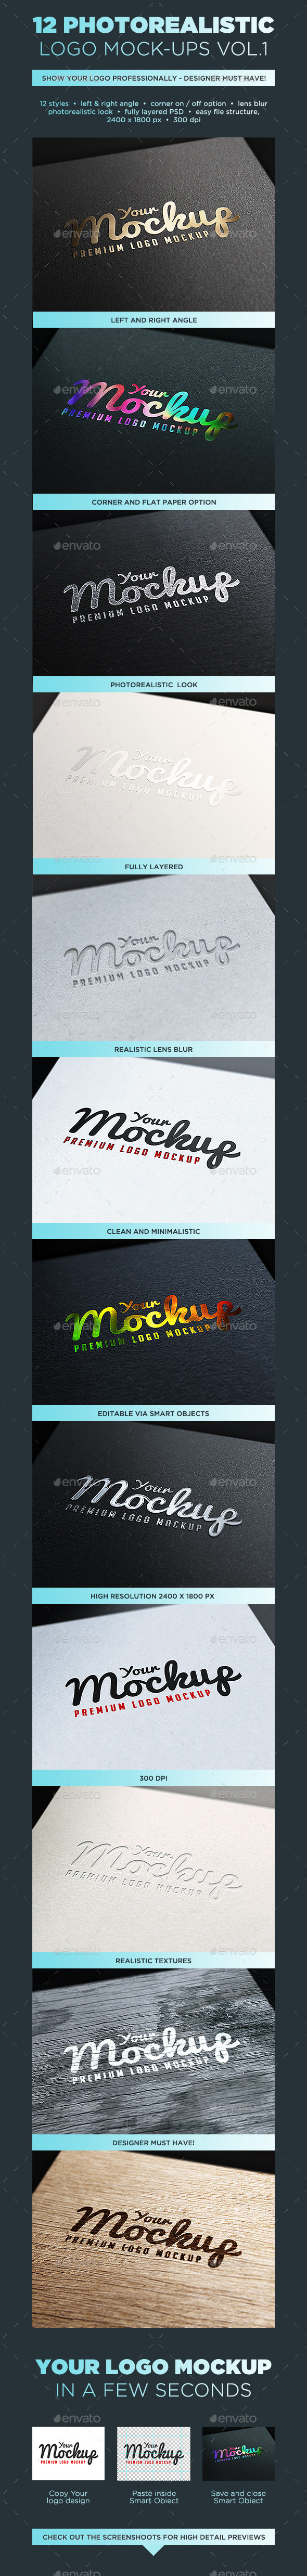 Your Mockup - Logo Mockups VOL.1 - Logo Product Mock-Ups